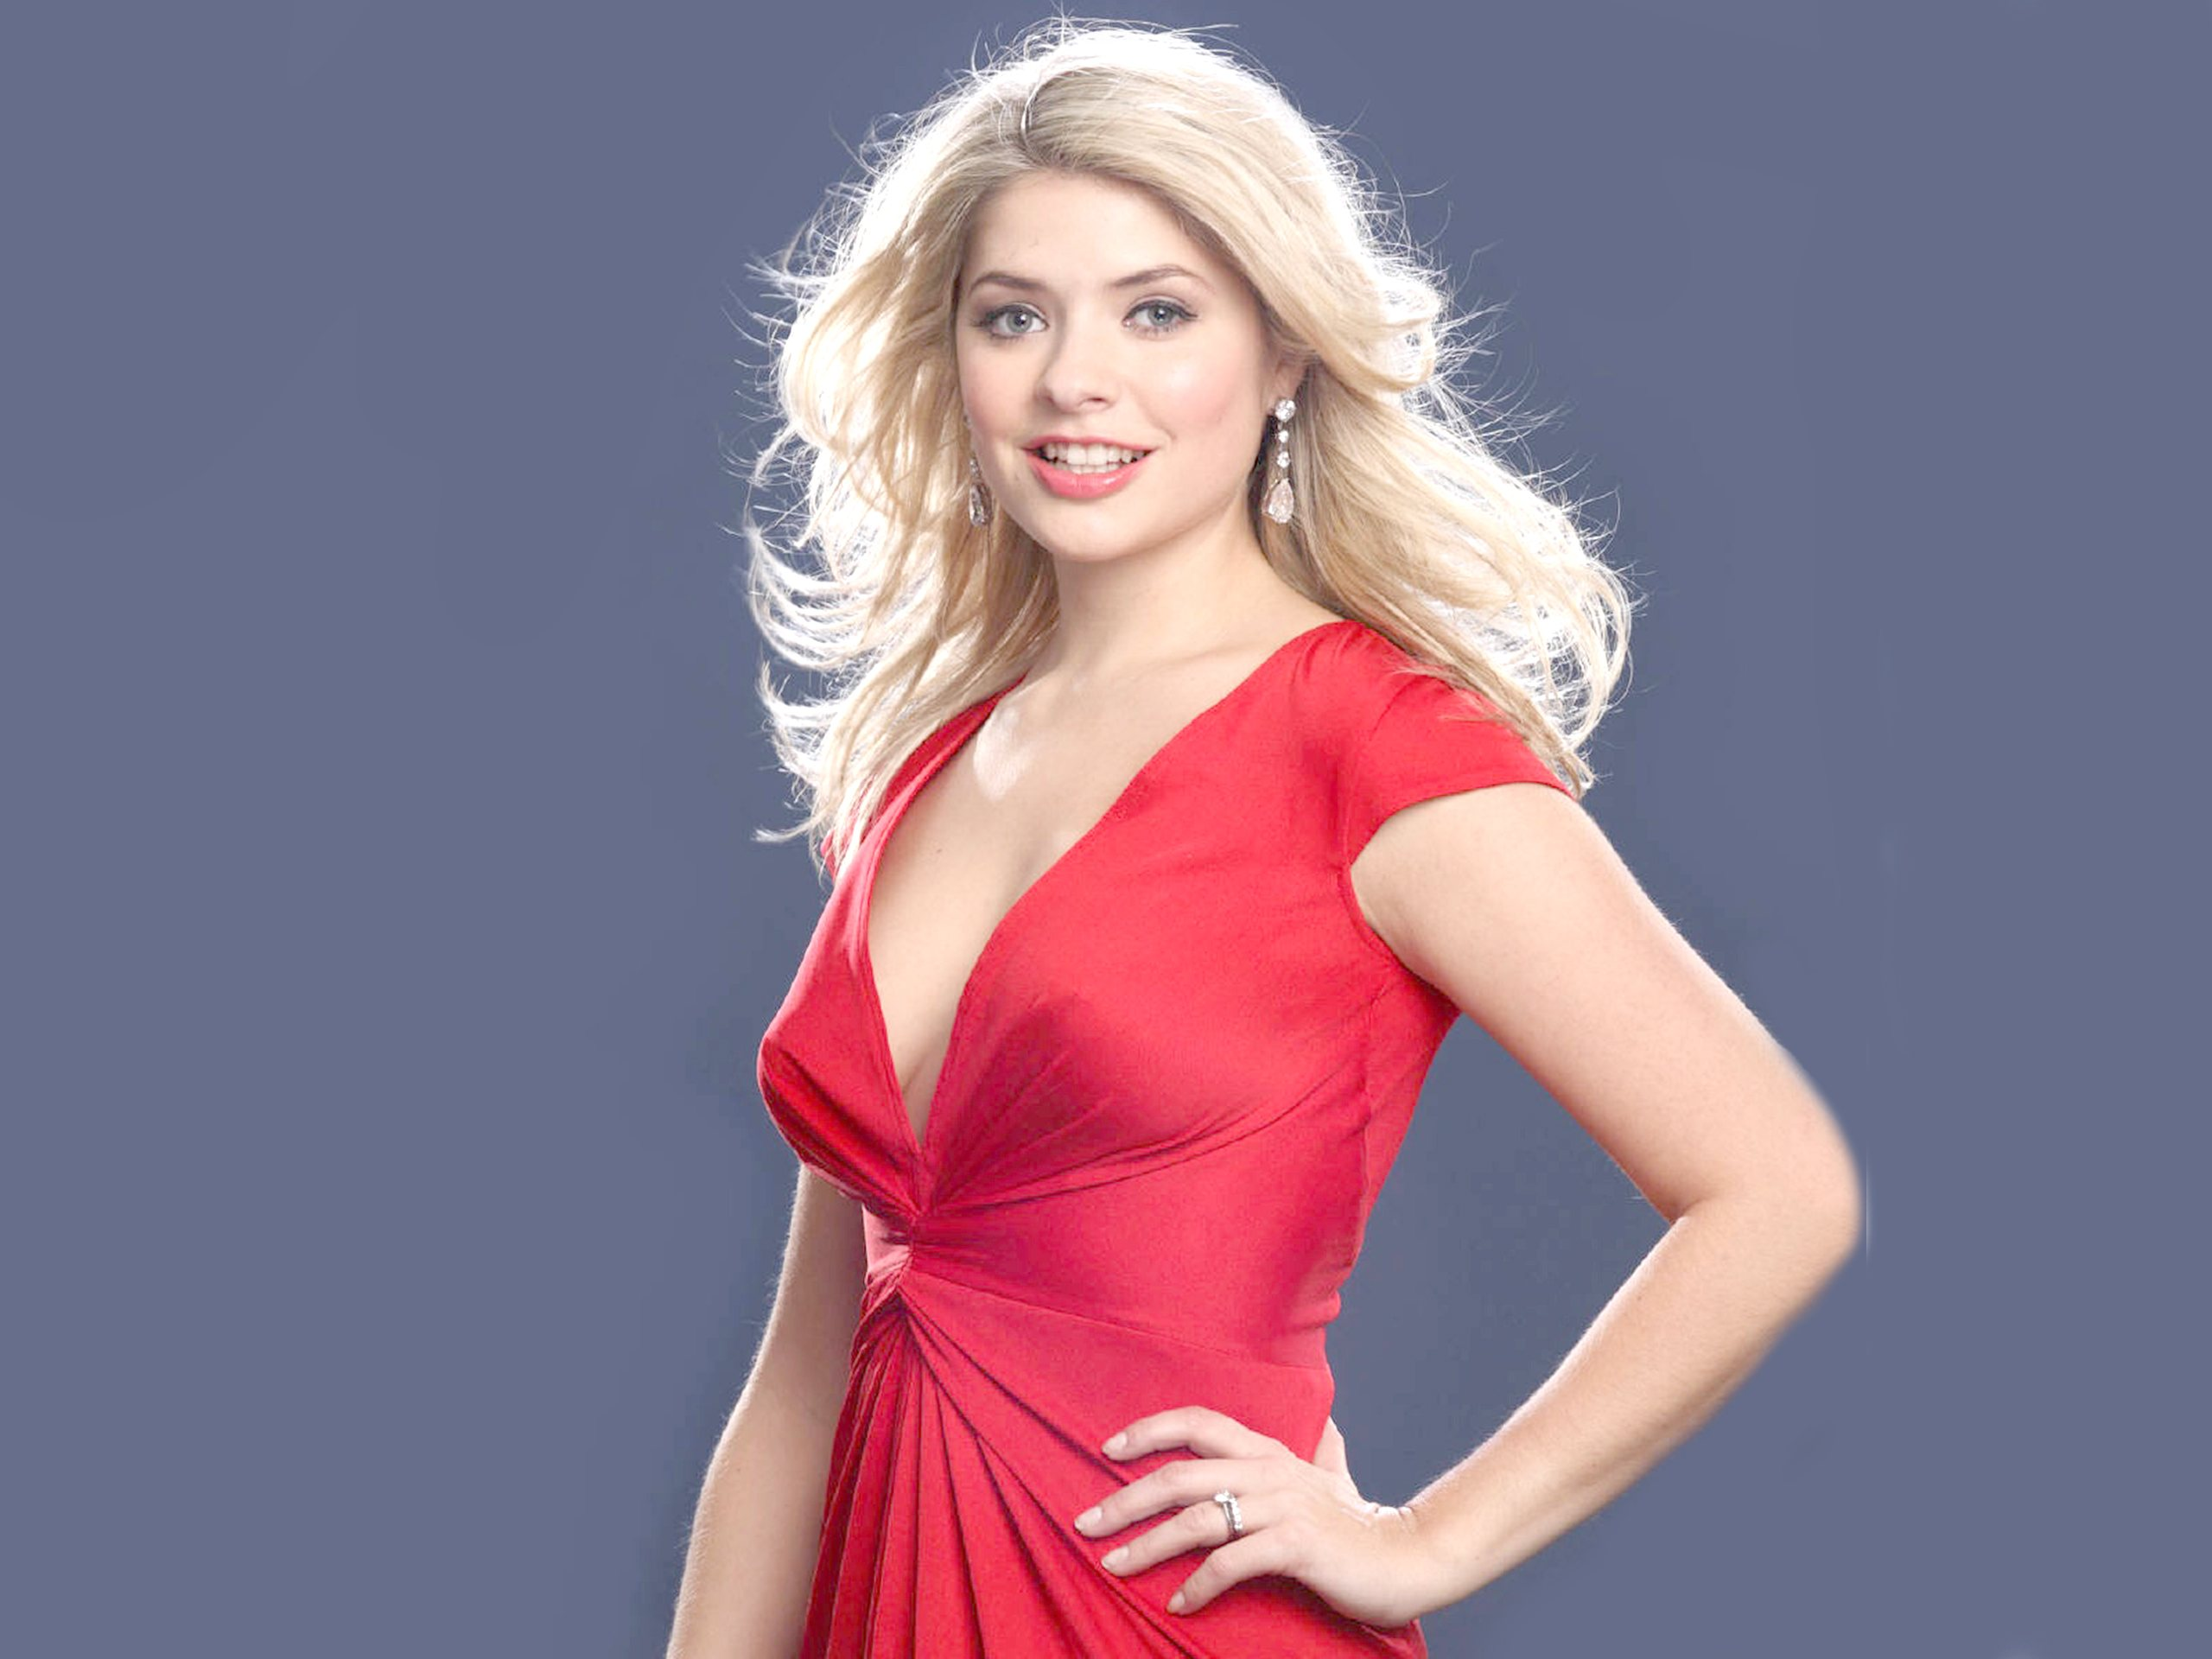 holly willoughby wallpaper 9510 - photo #15